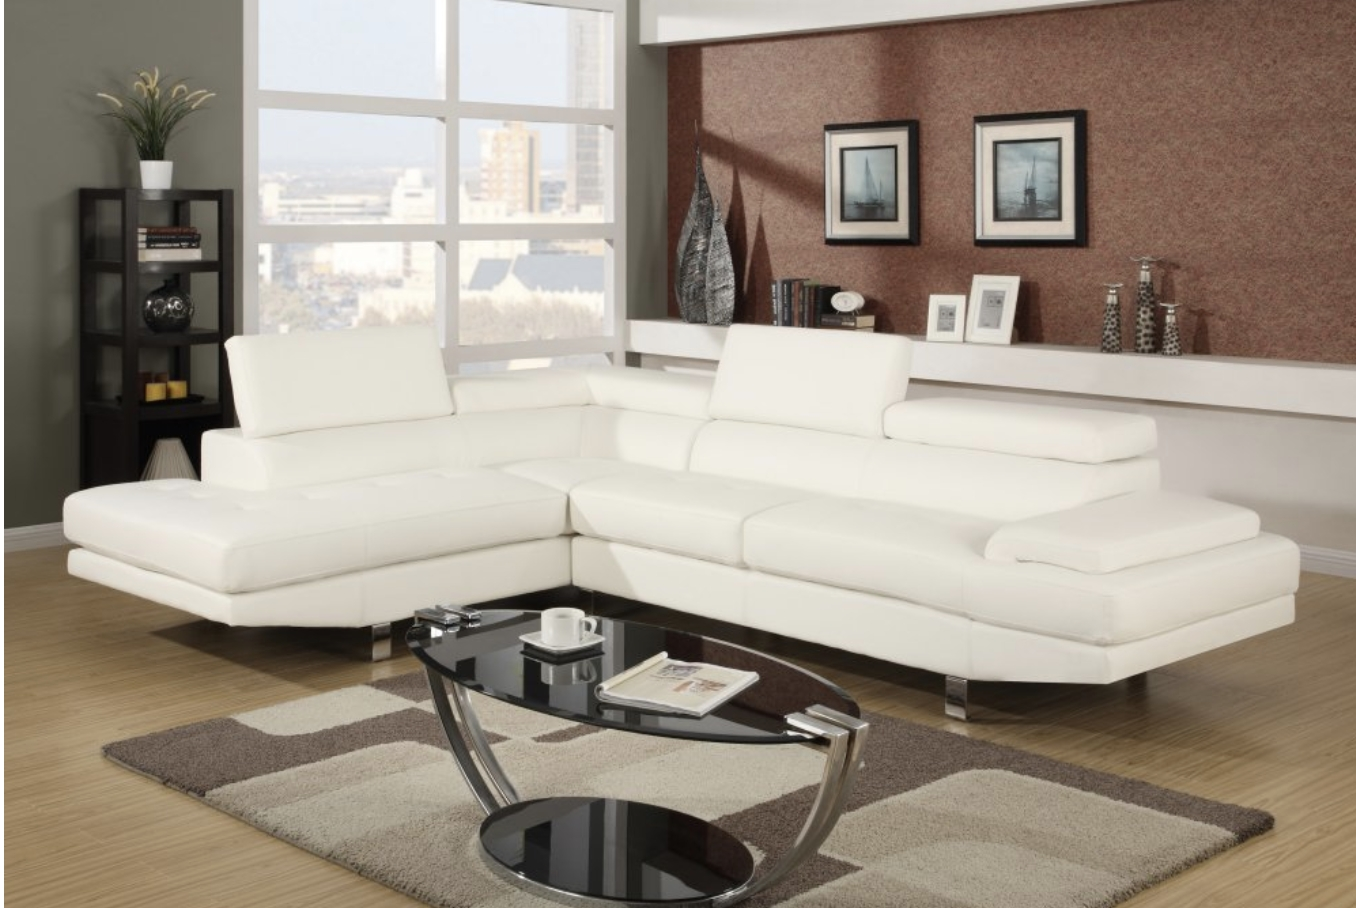 Most Recently Released 75 Modern Sectional Sofas For Small Spaces (2018) In 80x80 Sectional Sofas (View 15 of 20)